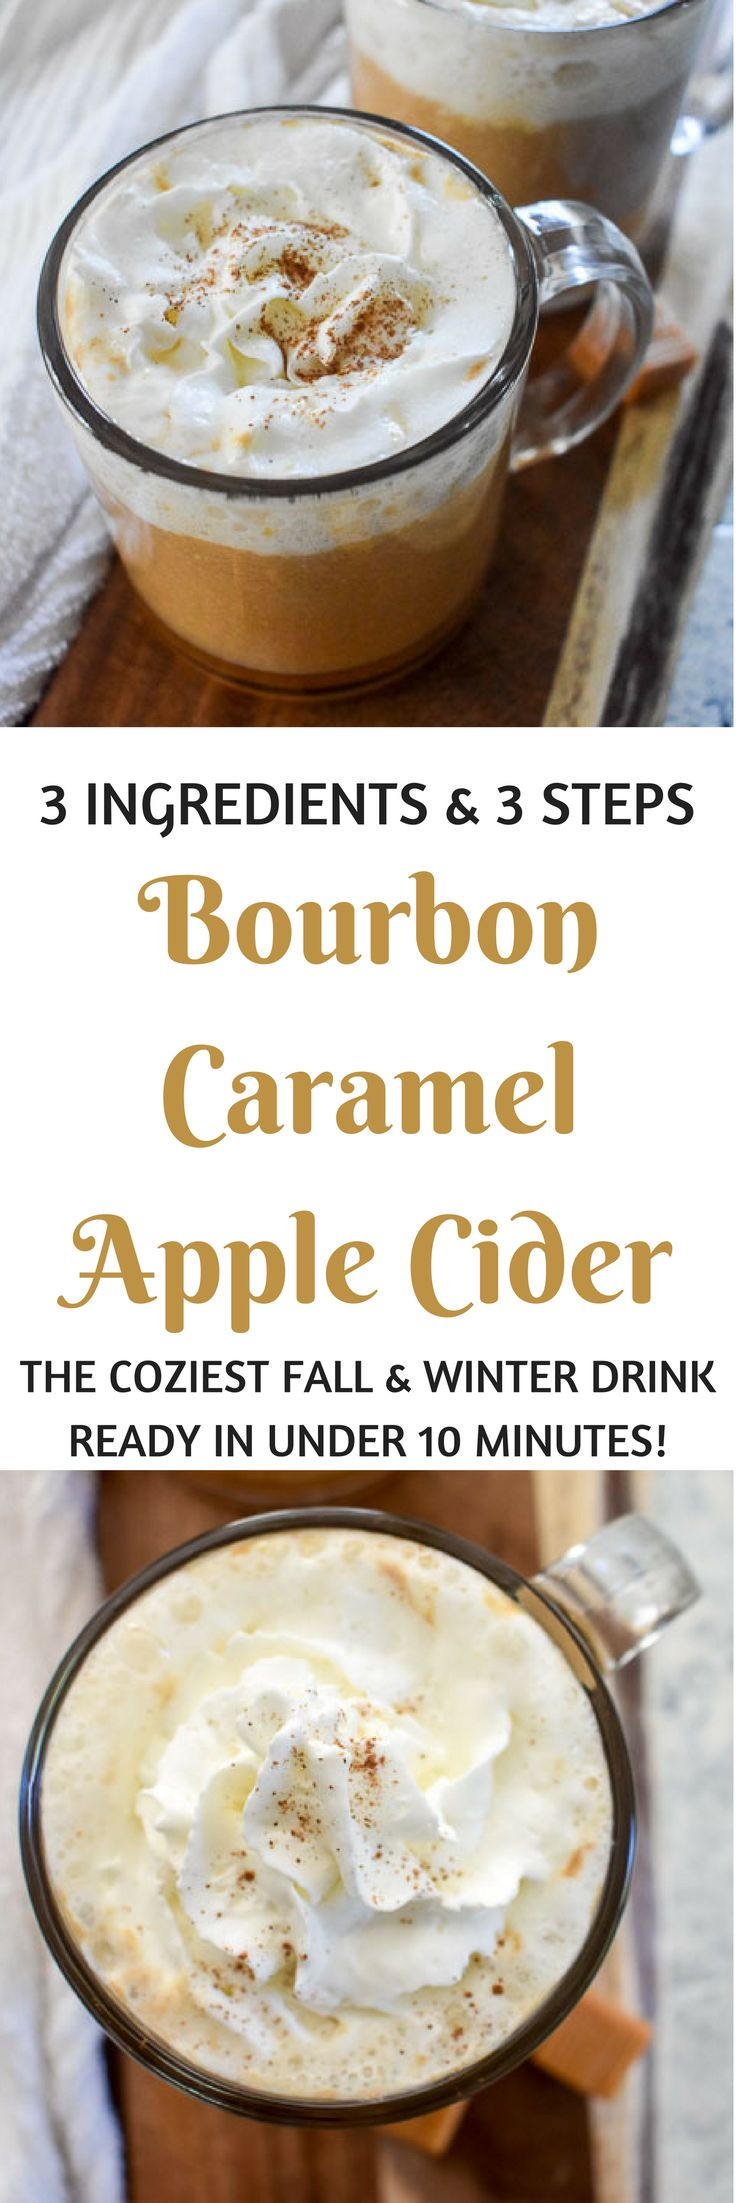 Bourbon Caramel Apple Cider is ready in 3 steps with 3 ingredients for the coziest warm Fall and winter drink in under 10 minutes. Recipe by Dash of Jazz